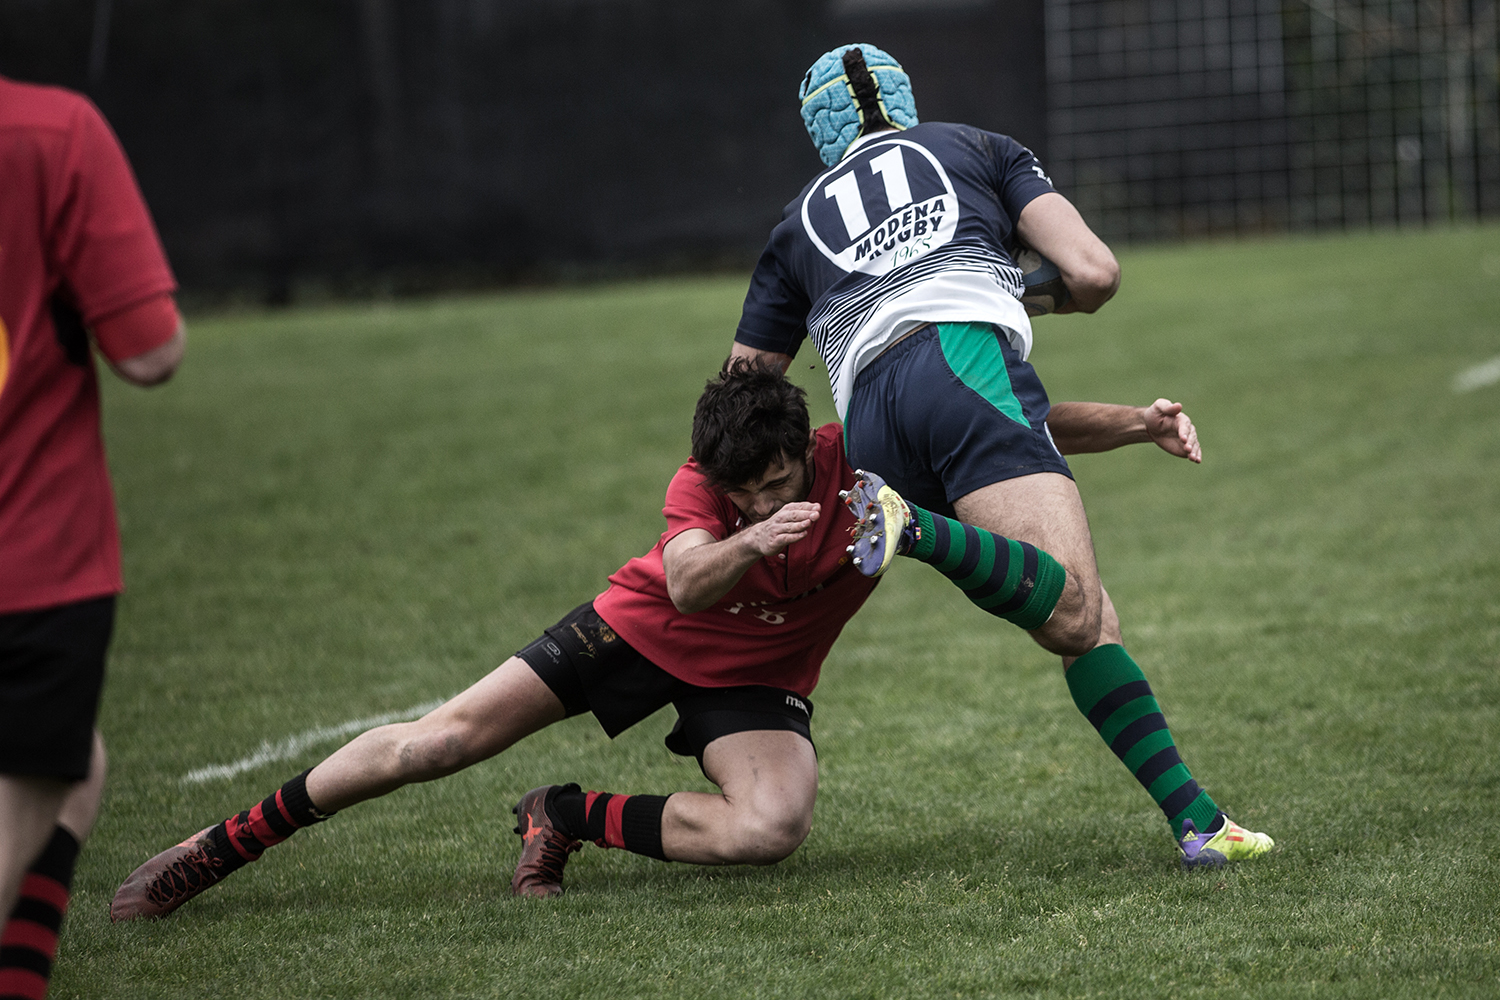 rugby_photograph_37.jpg